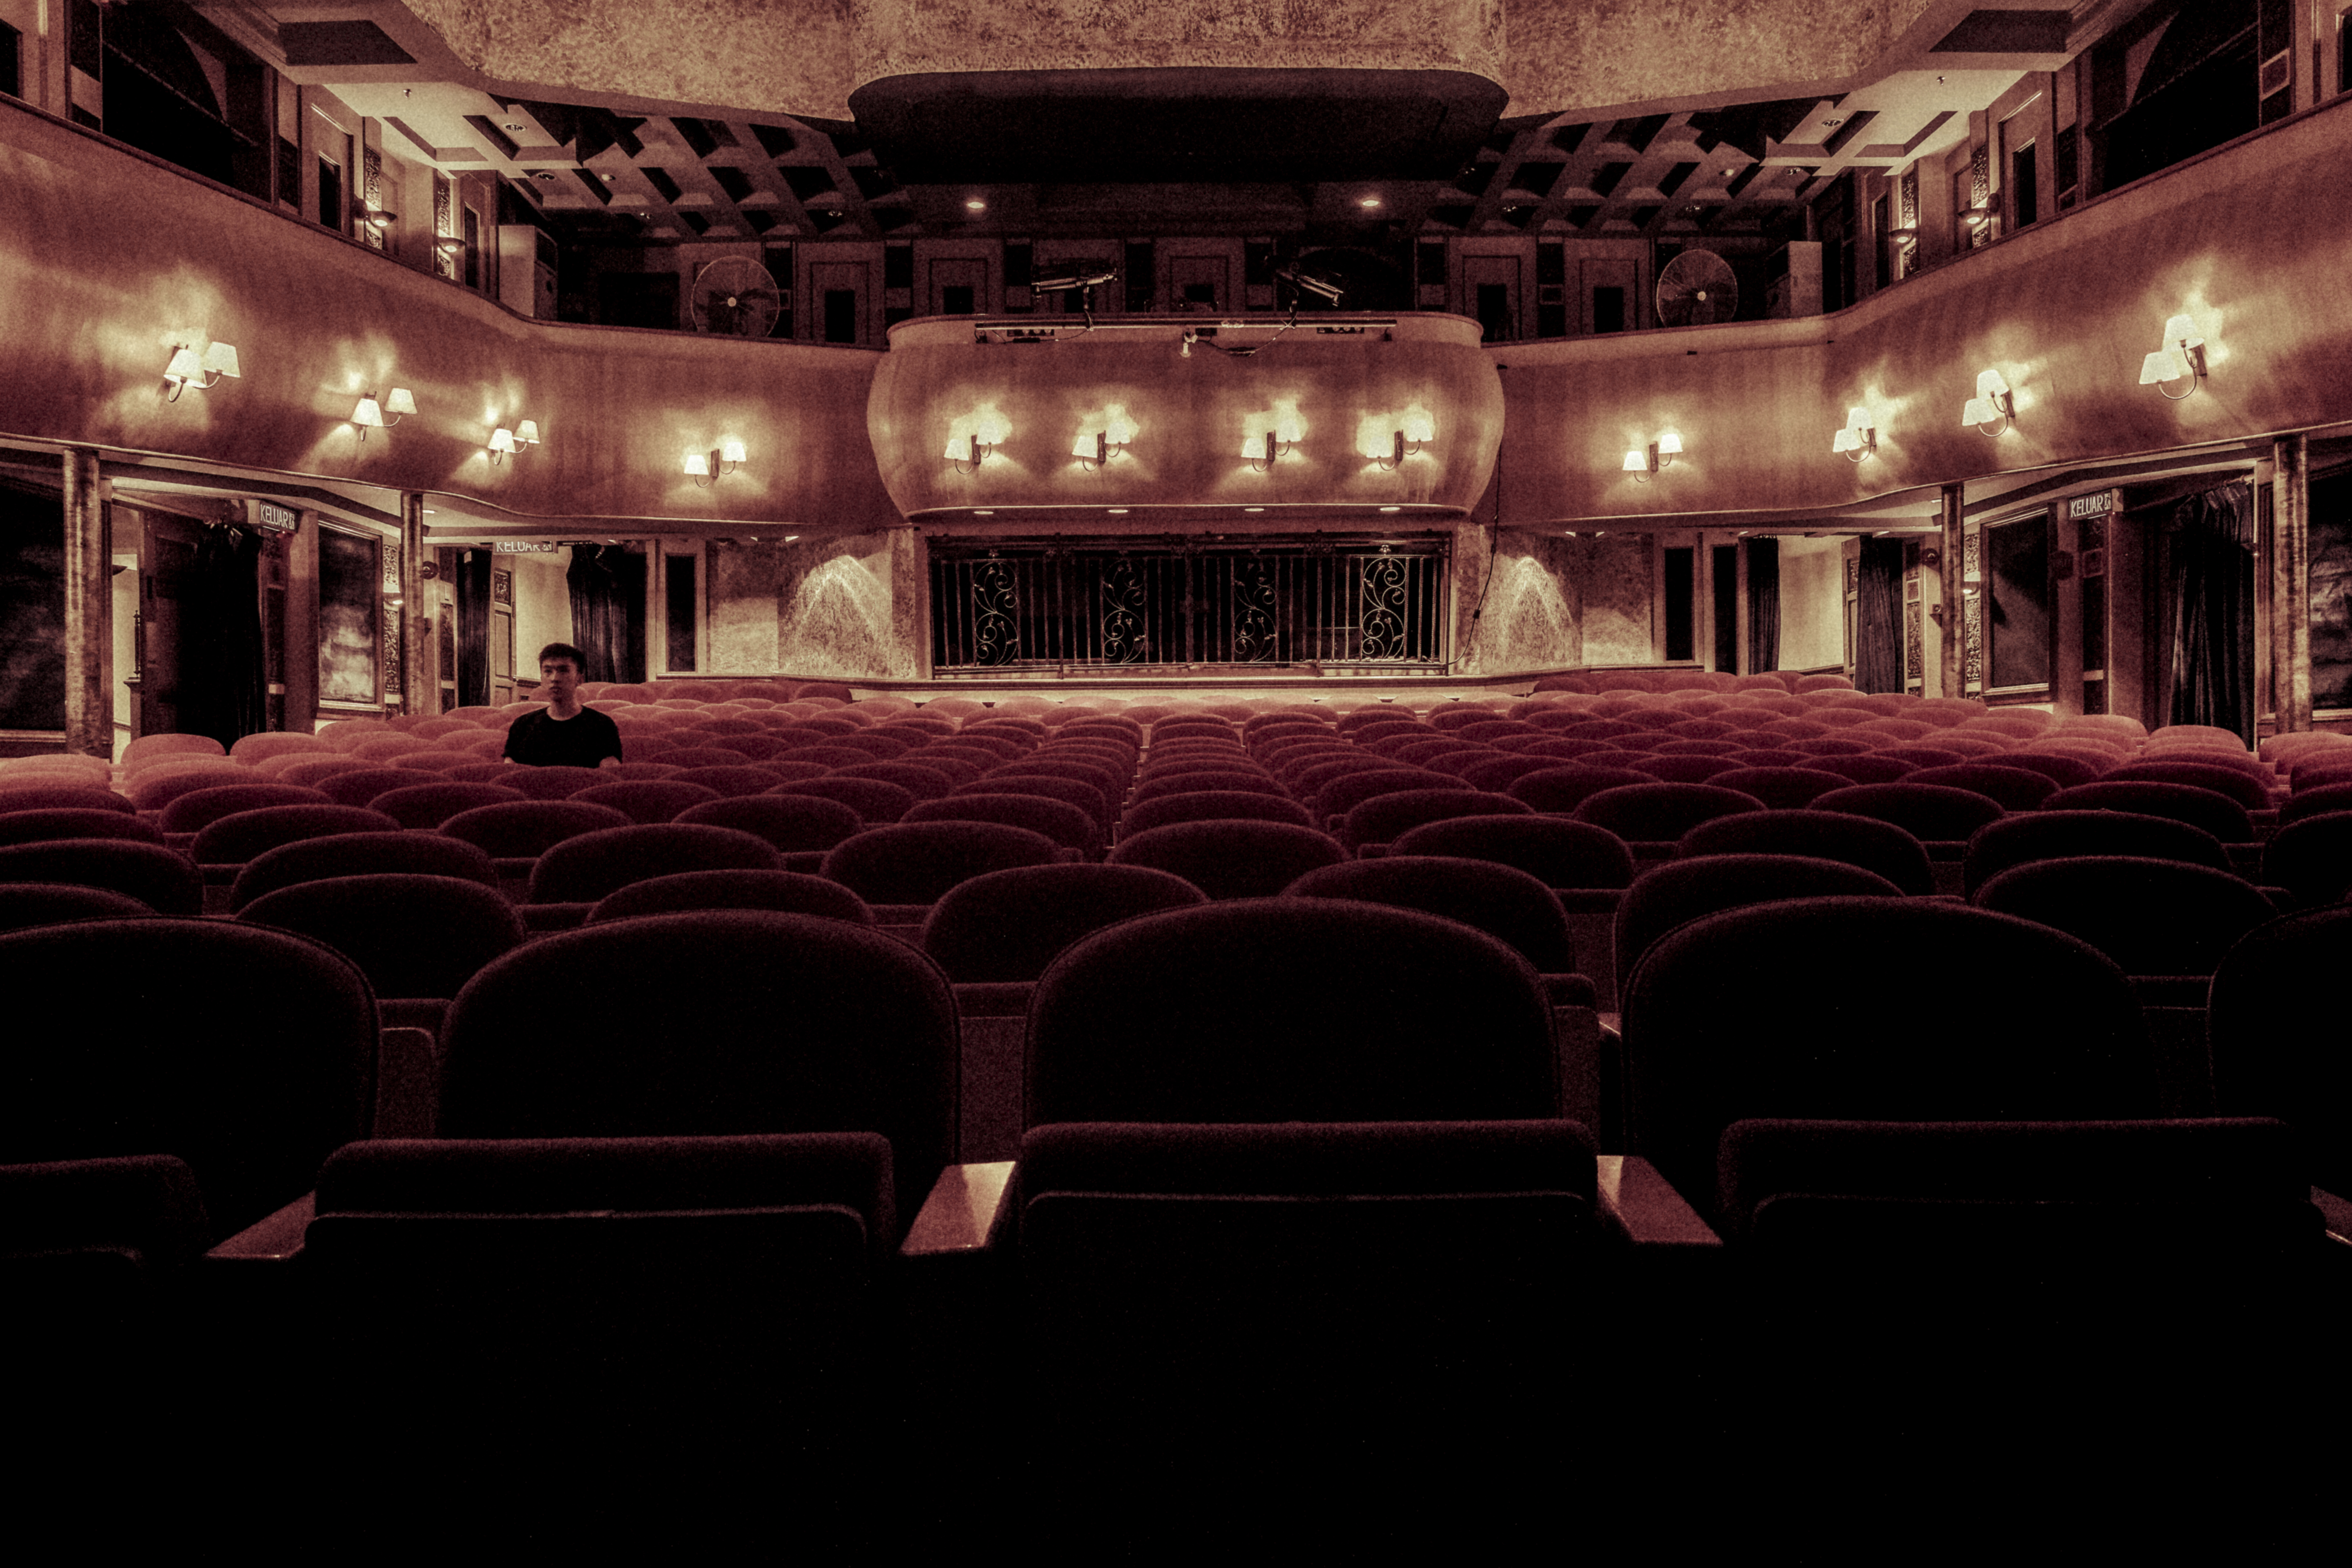 Are you ready for this post about the theaters? This is post about philosophy and you might not get it immediatly. Are you up for the challenge?